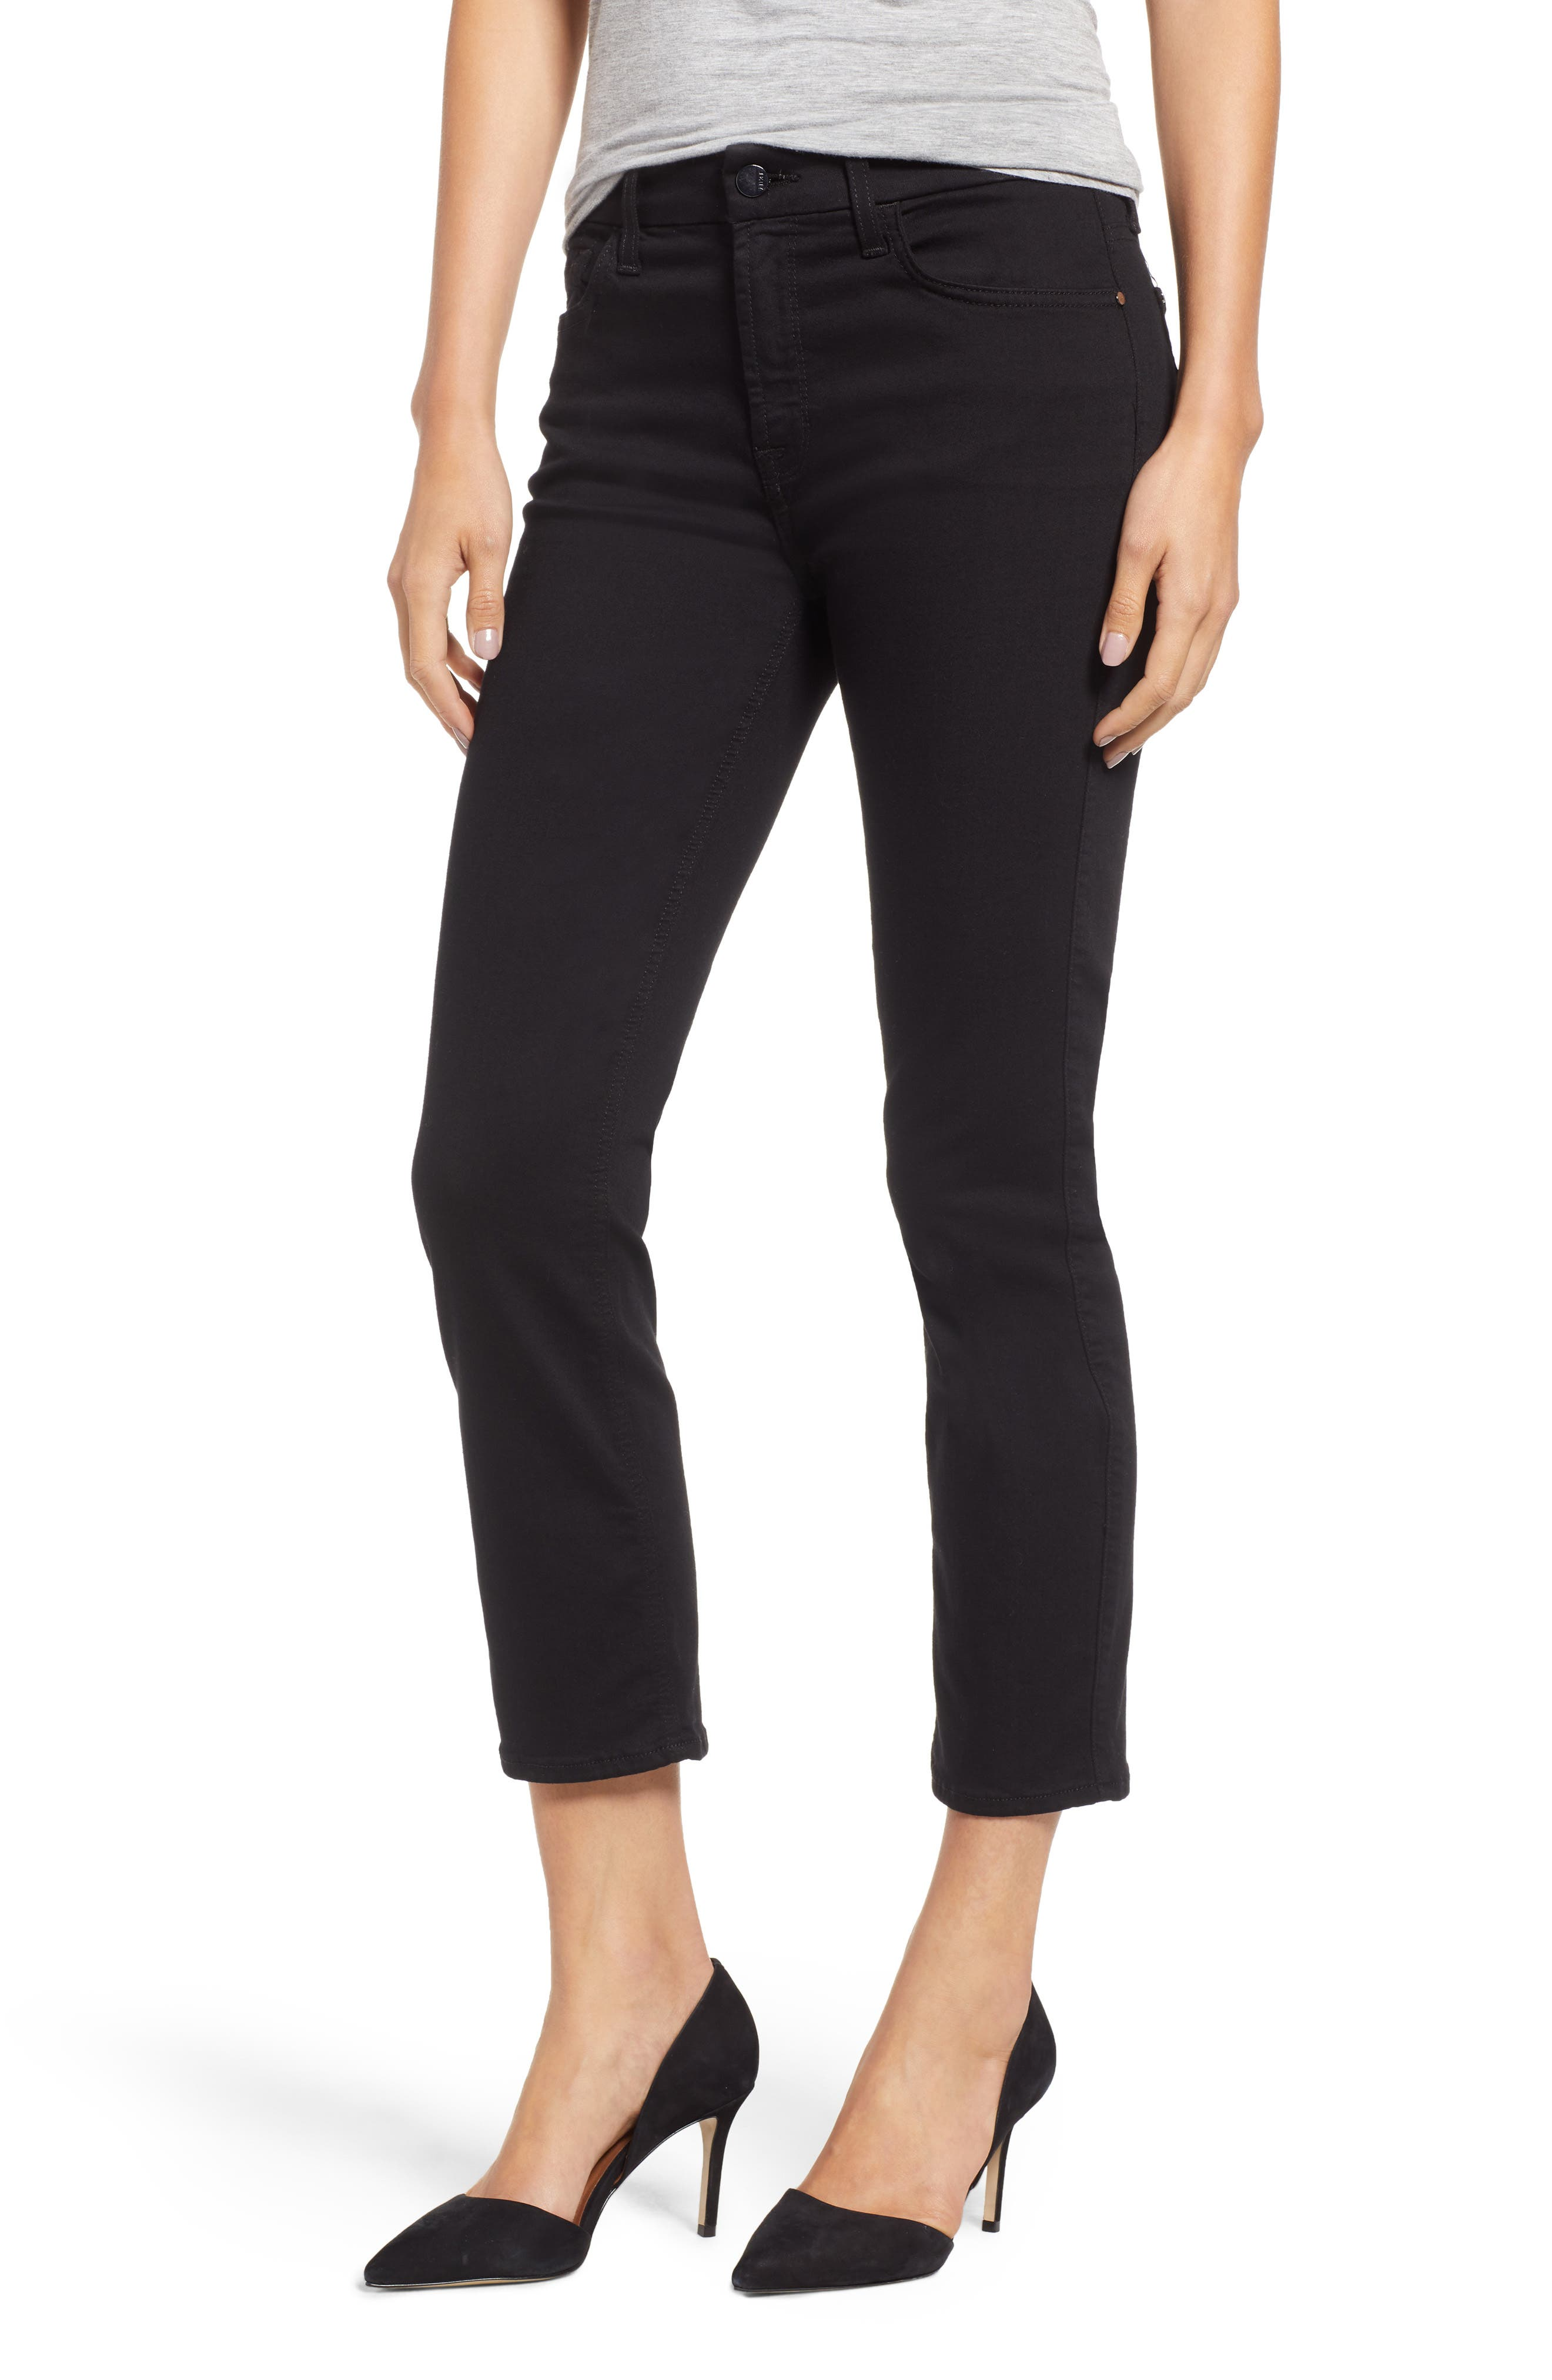 JEN7 Stretch Crop Straight Leg Jeans in Black